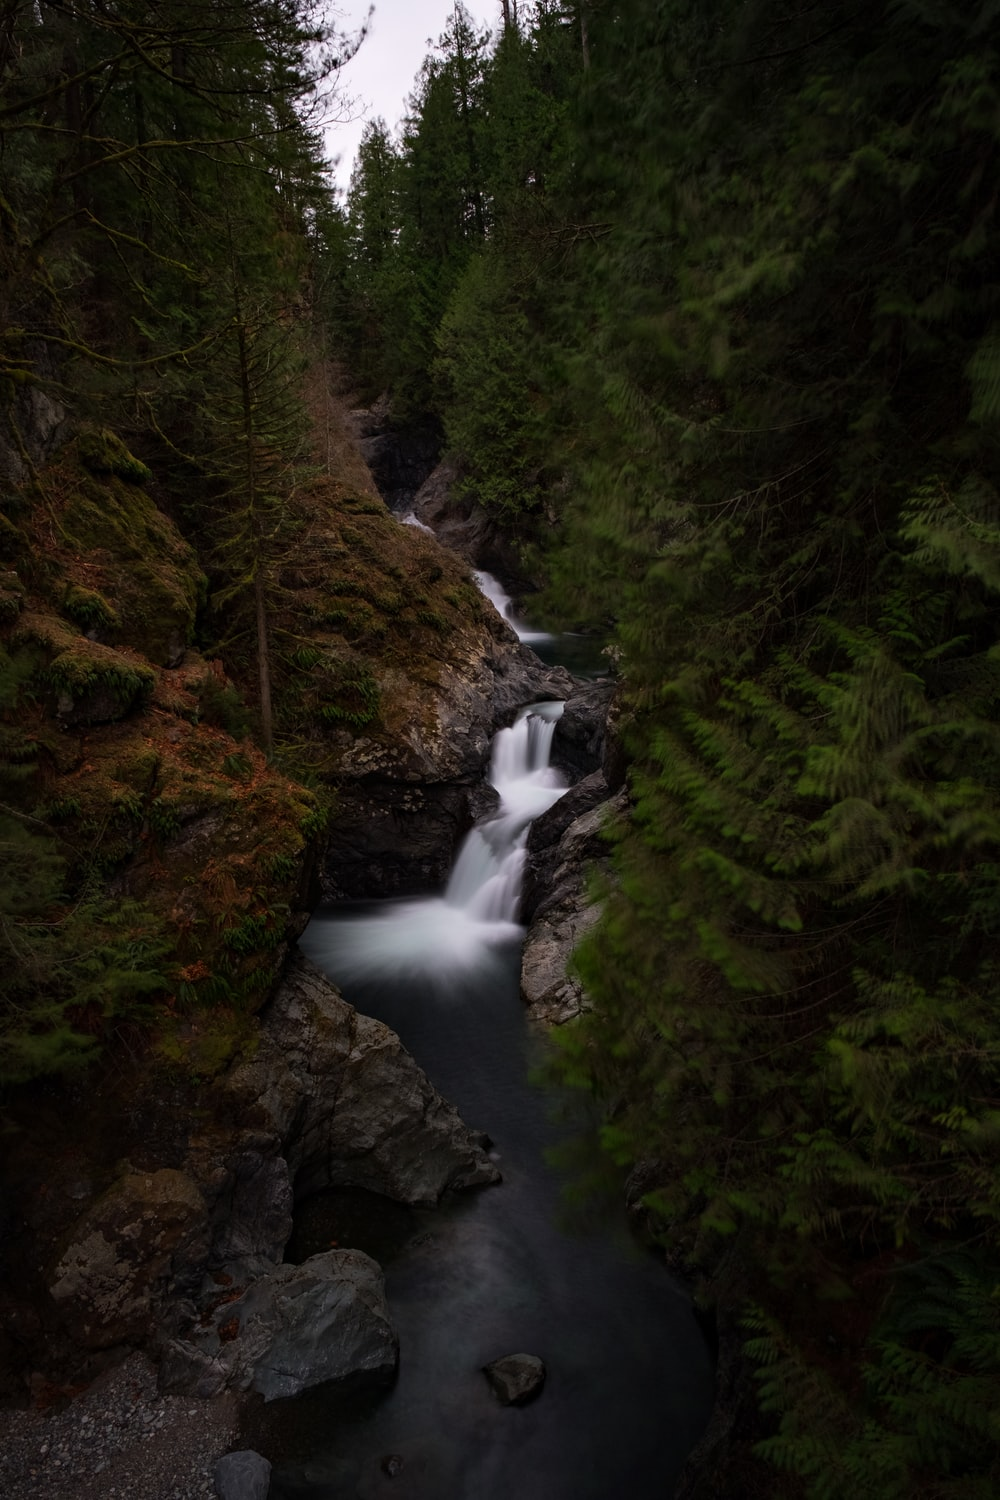 waterfalls and forest during day